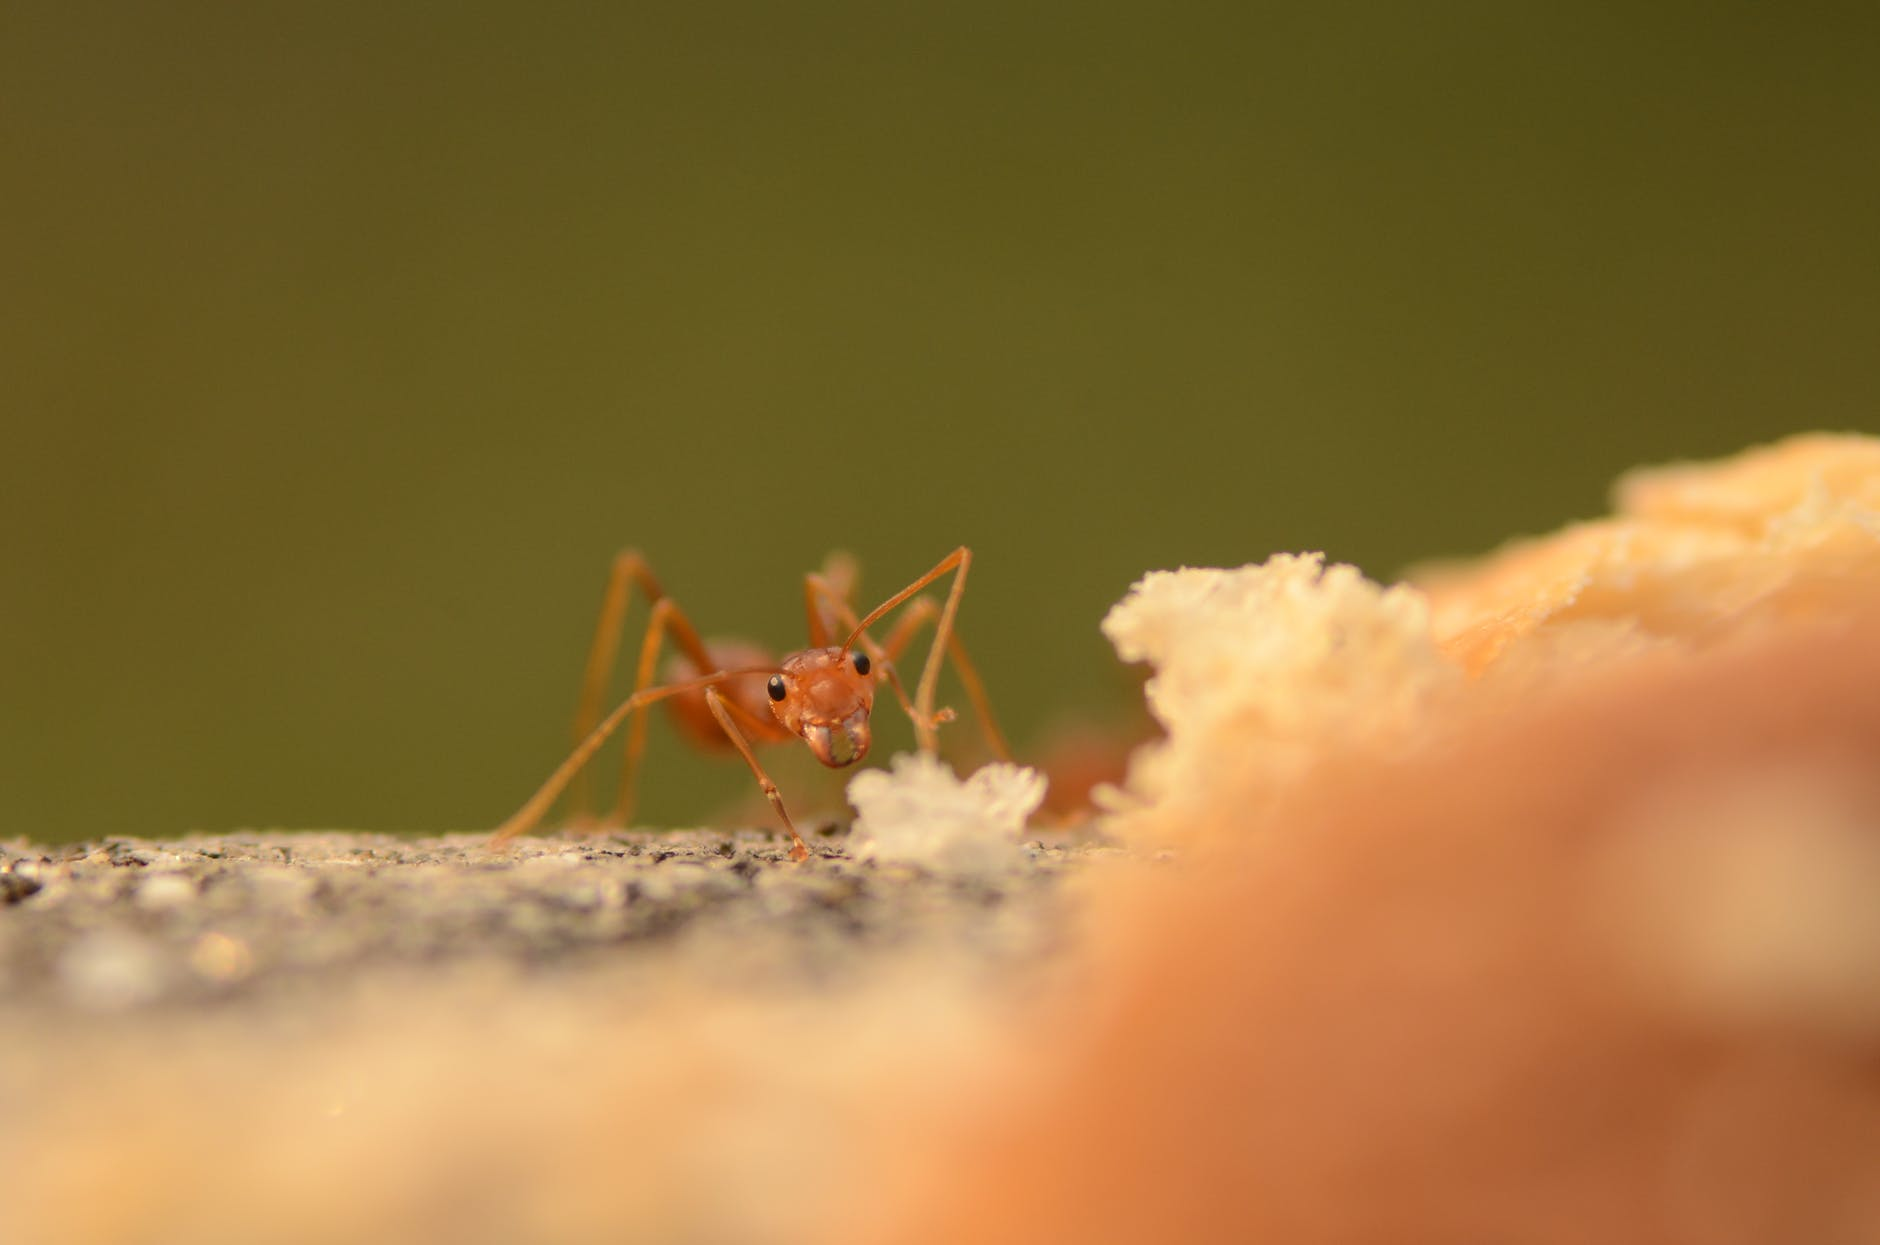 close up shot of an ant